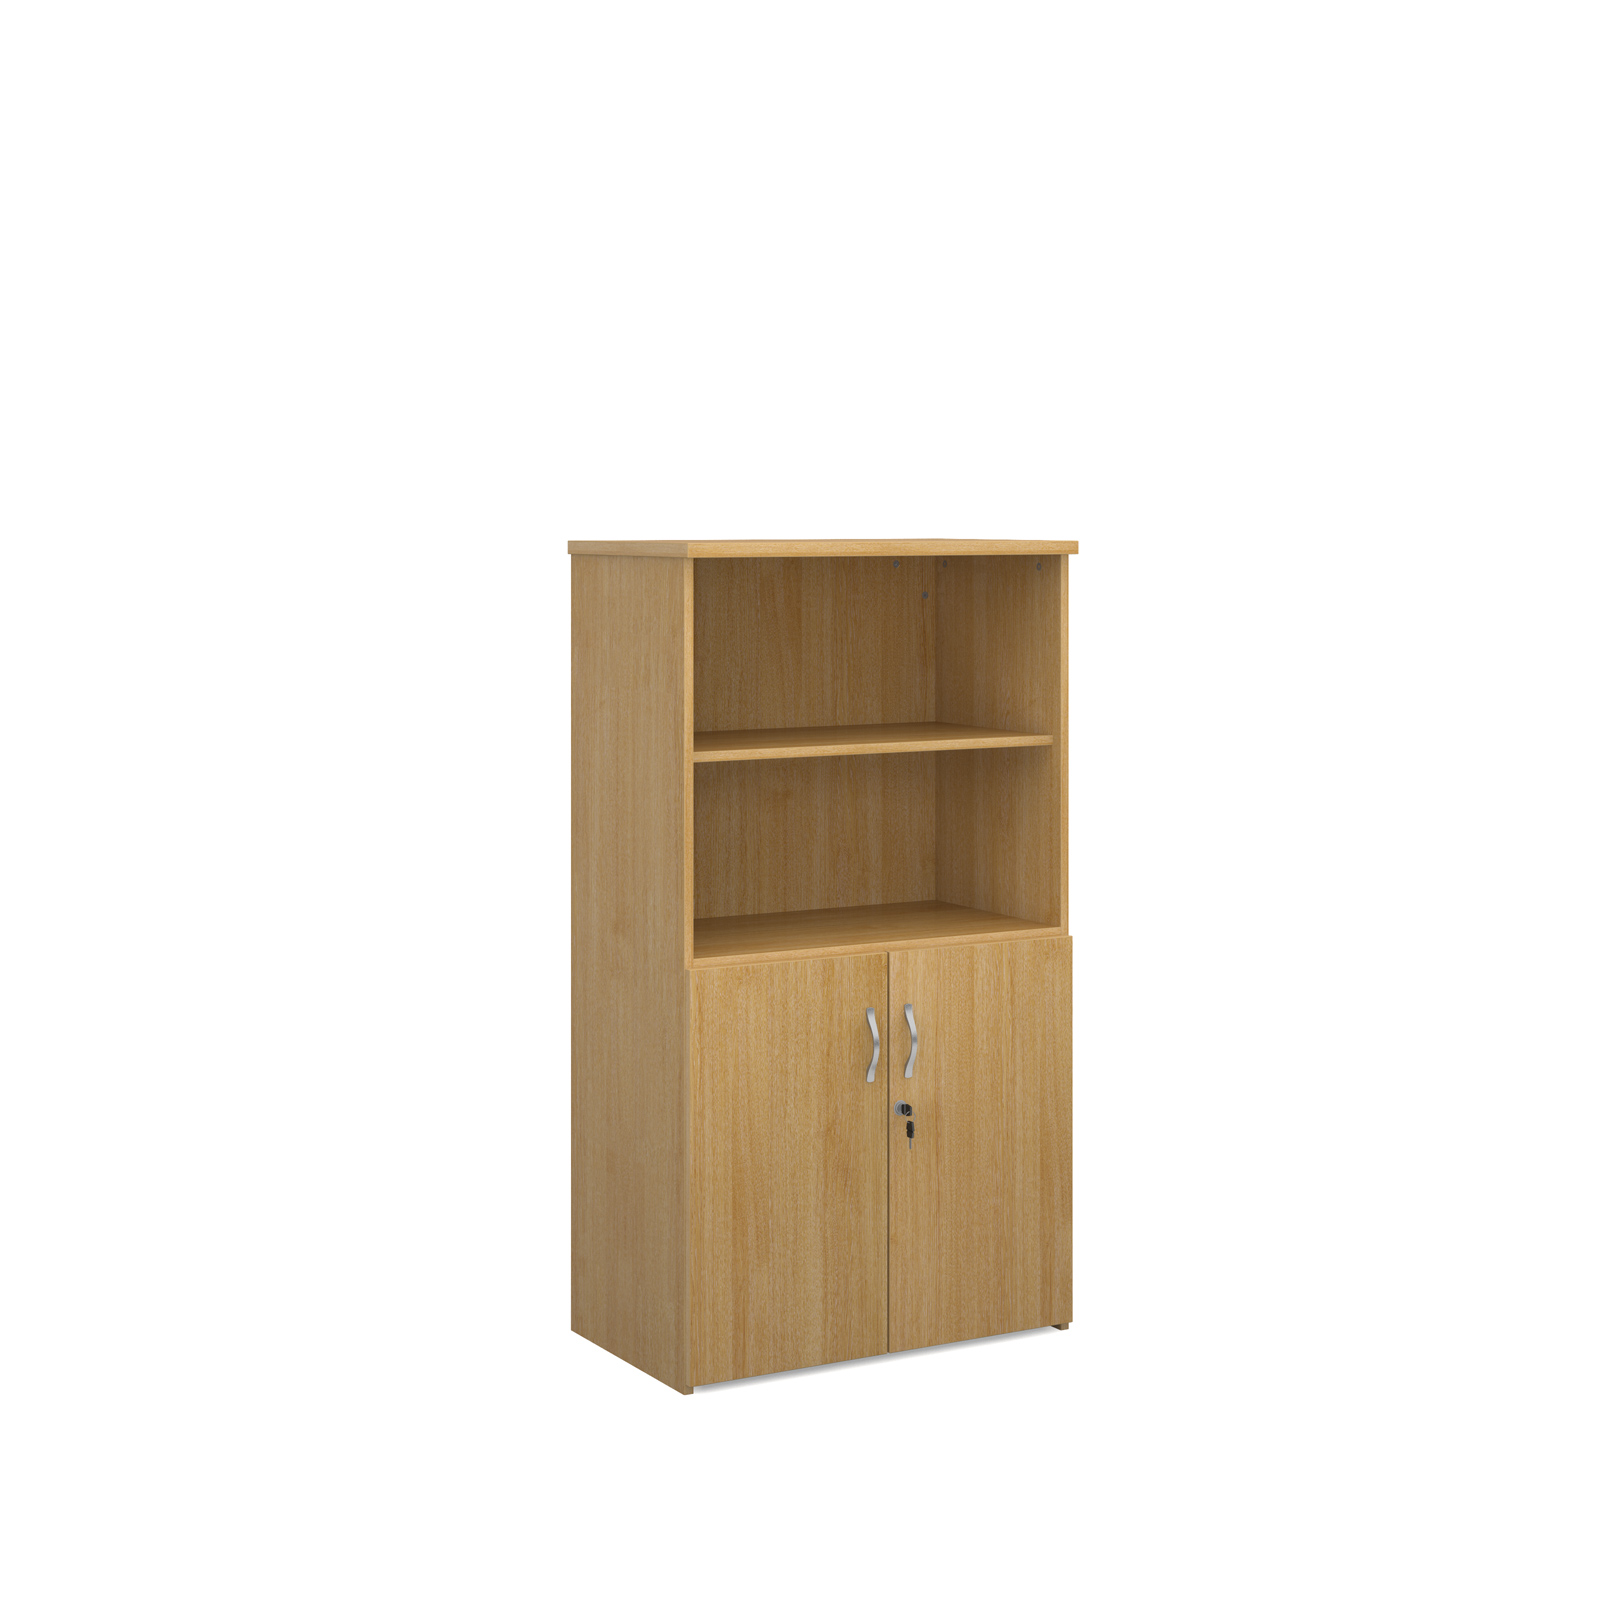 1440mm high combination unit with open top and wood doors in oak